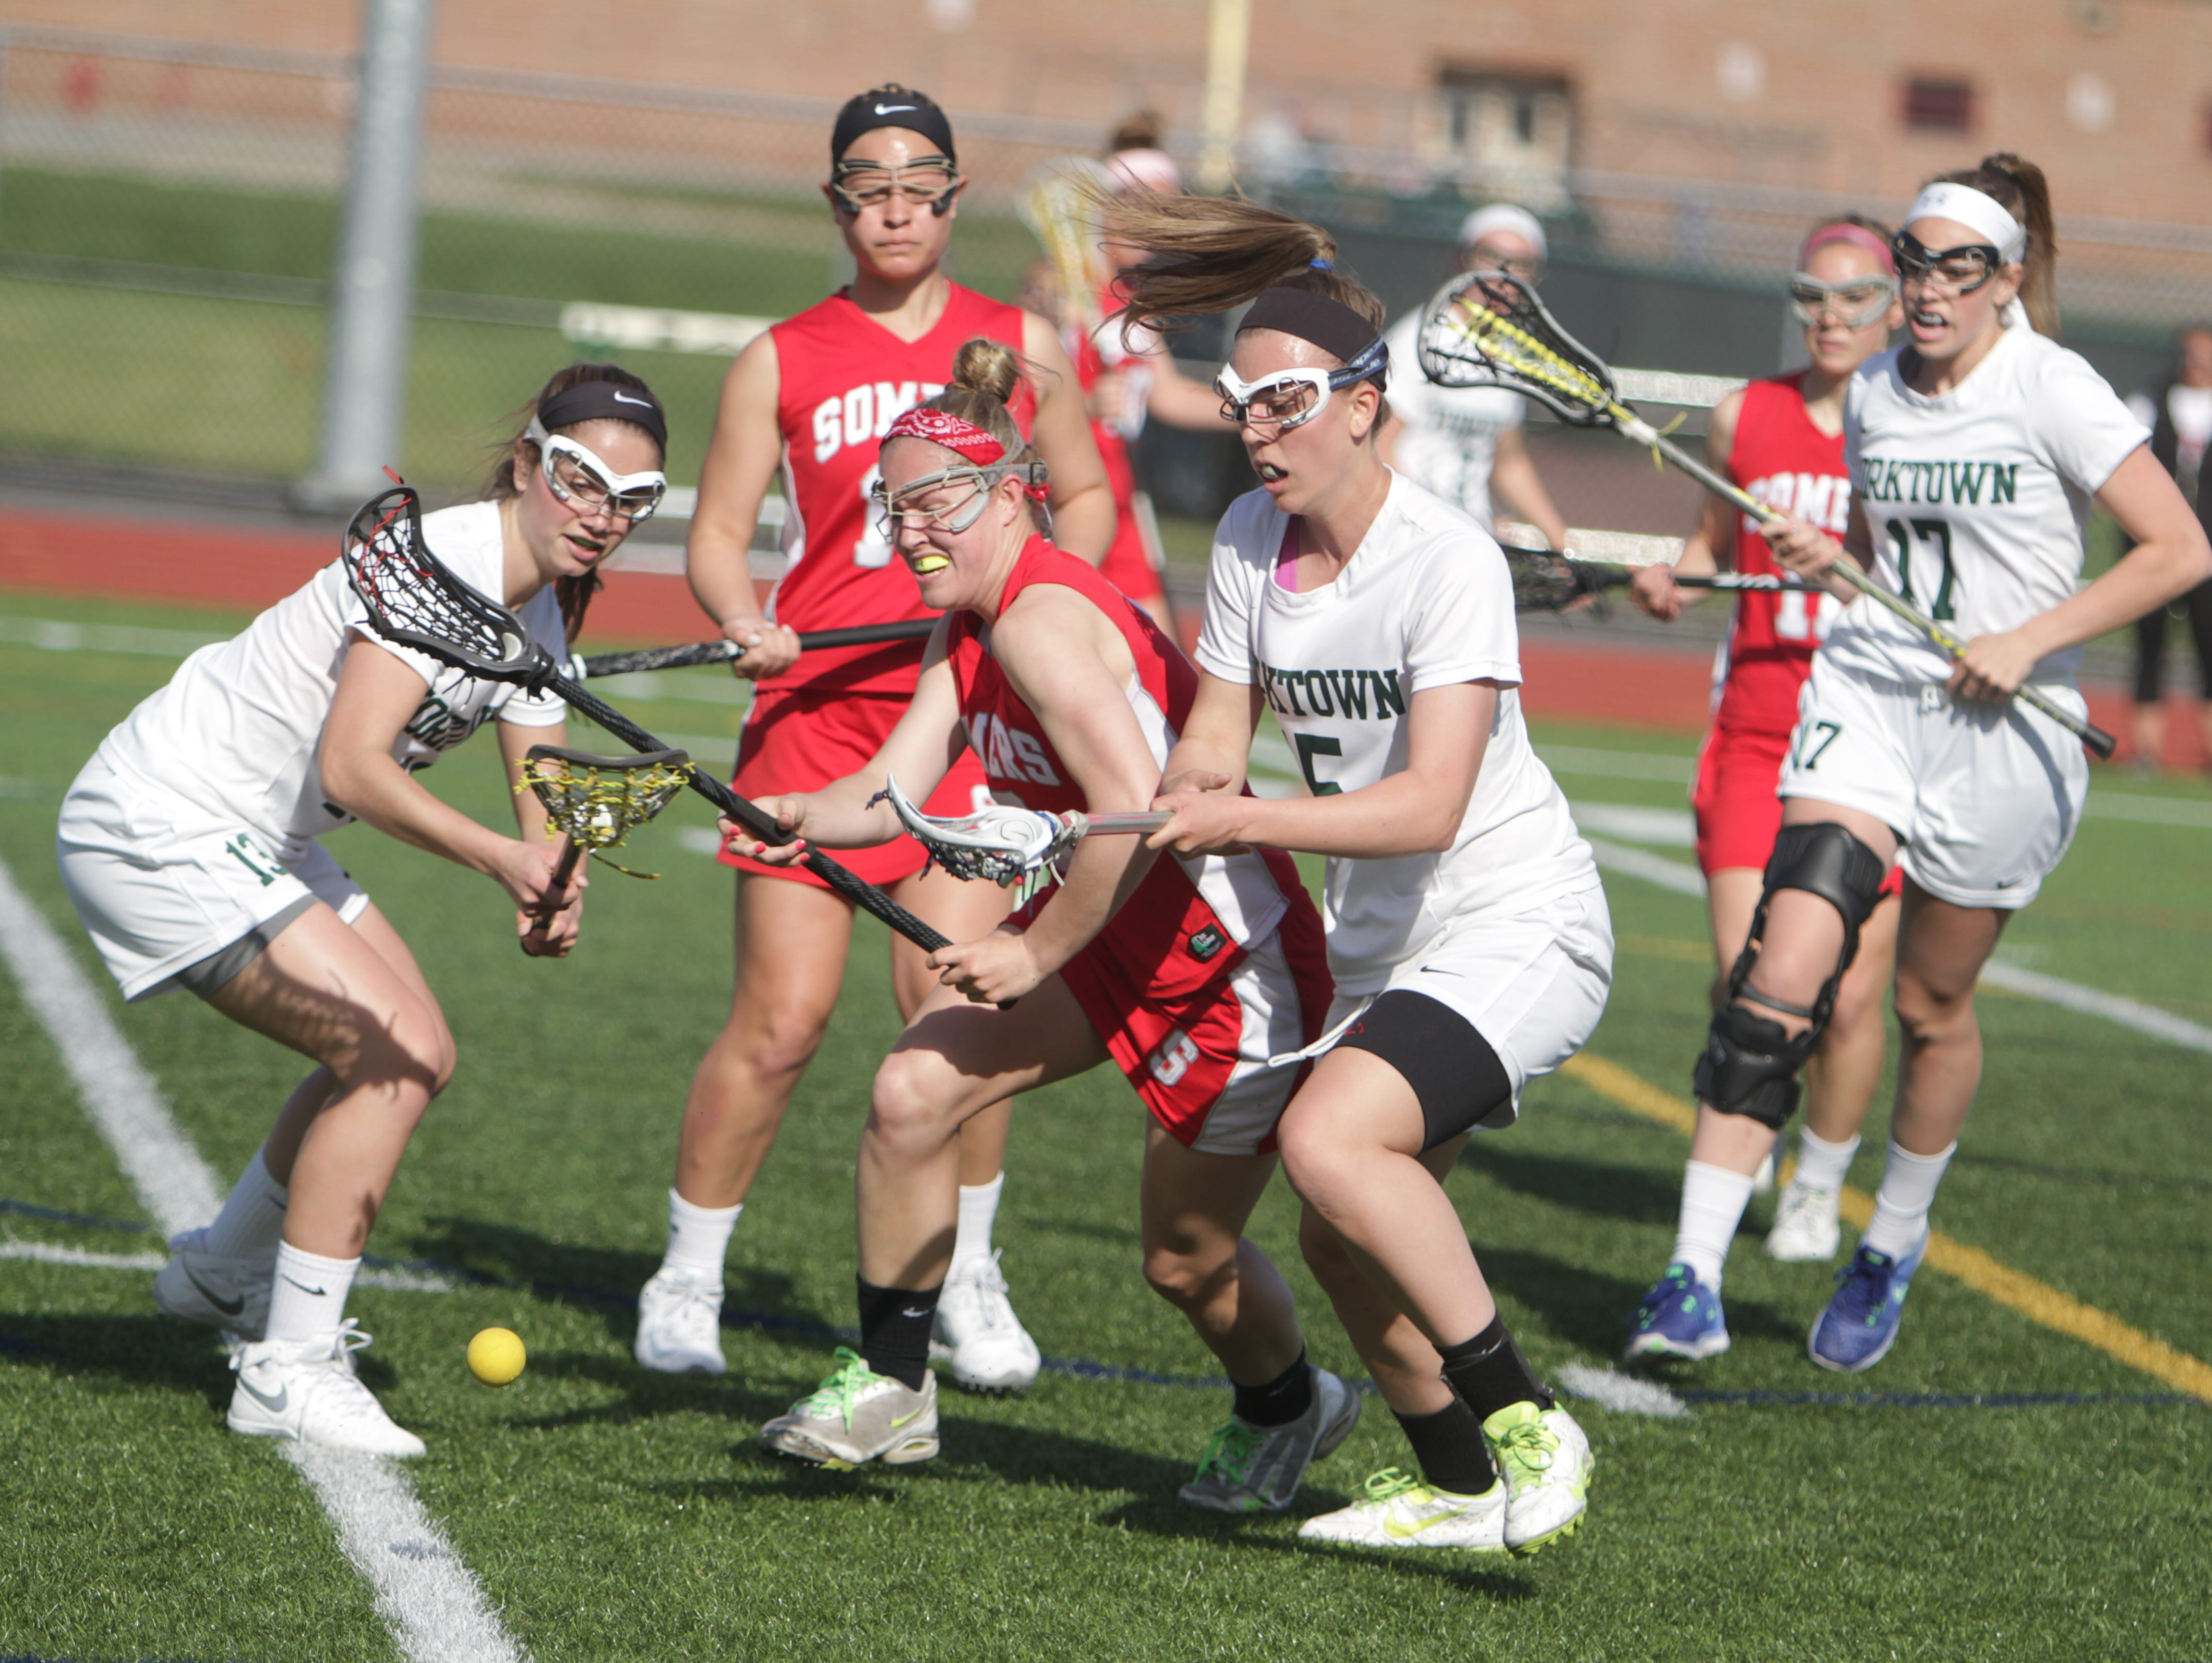 Somers' Gabby Rosenzweig (middle) and Yorktown's Rilea Fusco (left) and Ashley Stilo (right) go for a ground ball during a Section 1 girls lacrosse game between Yorktown and Somers at Yorktown High School on Thursday, April 21st, 2016. Somers won 11-10.